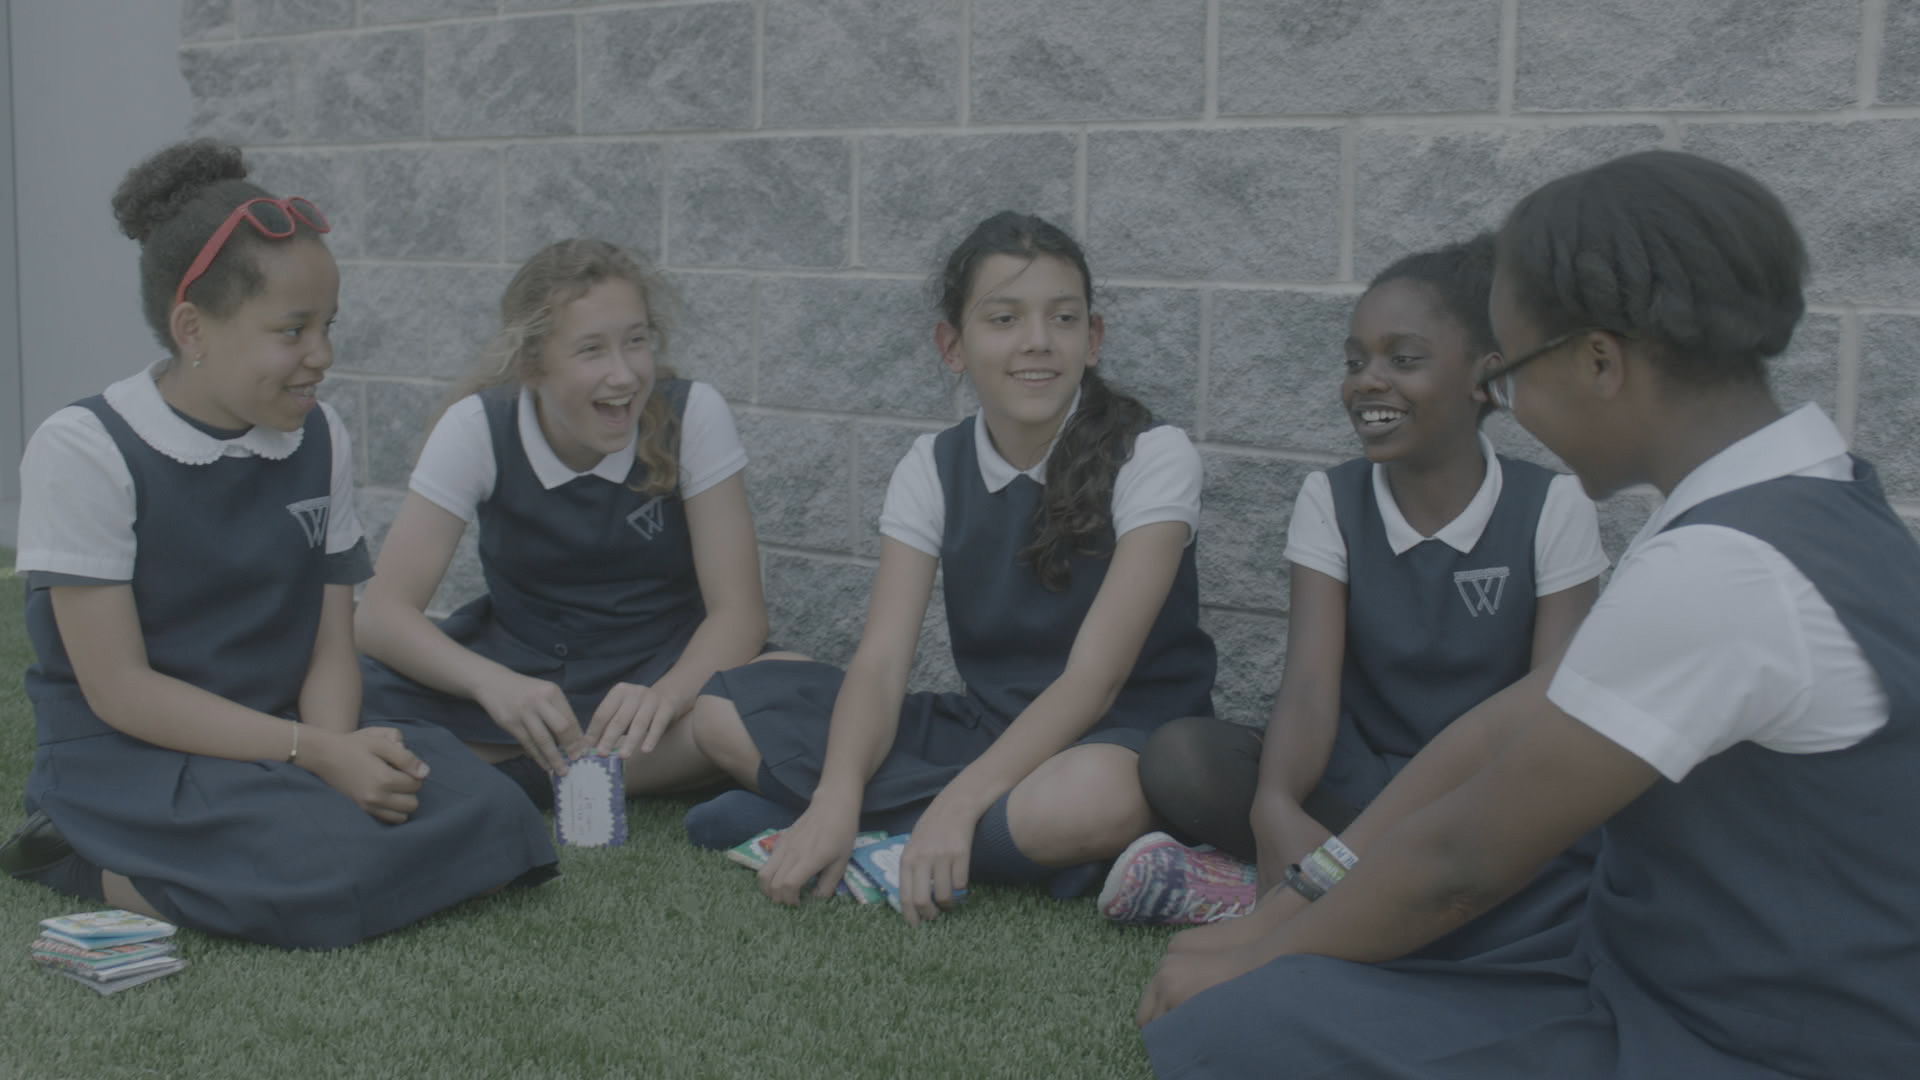 Compelling Social Experiment Tackles Back-To-School Anxiety